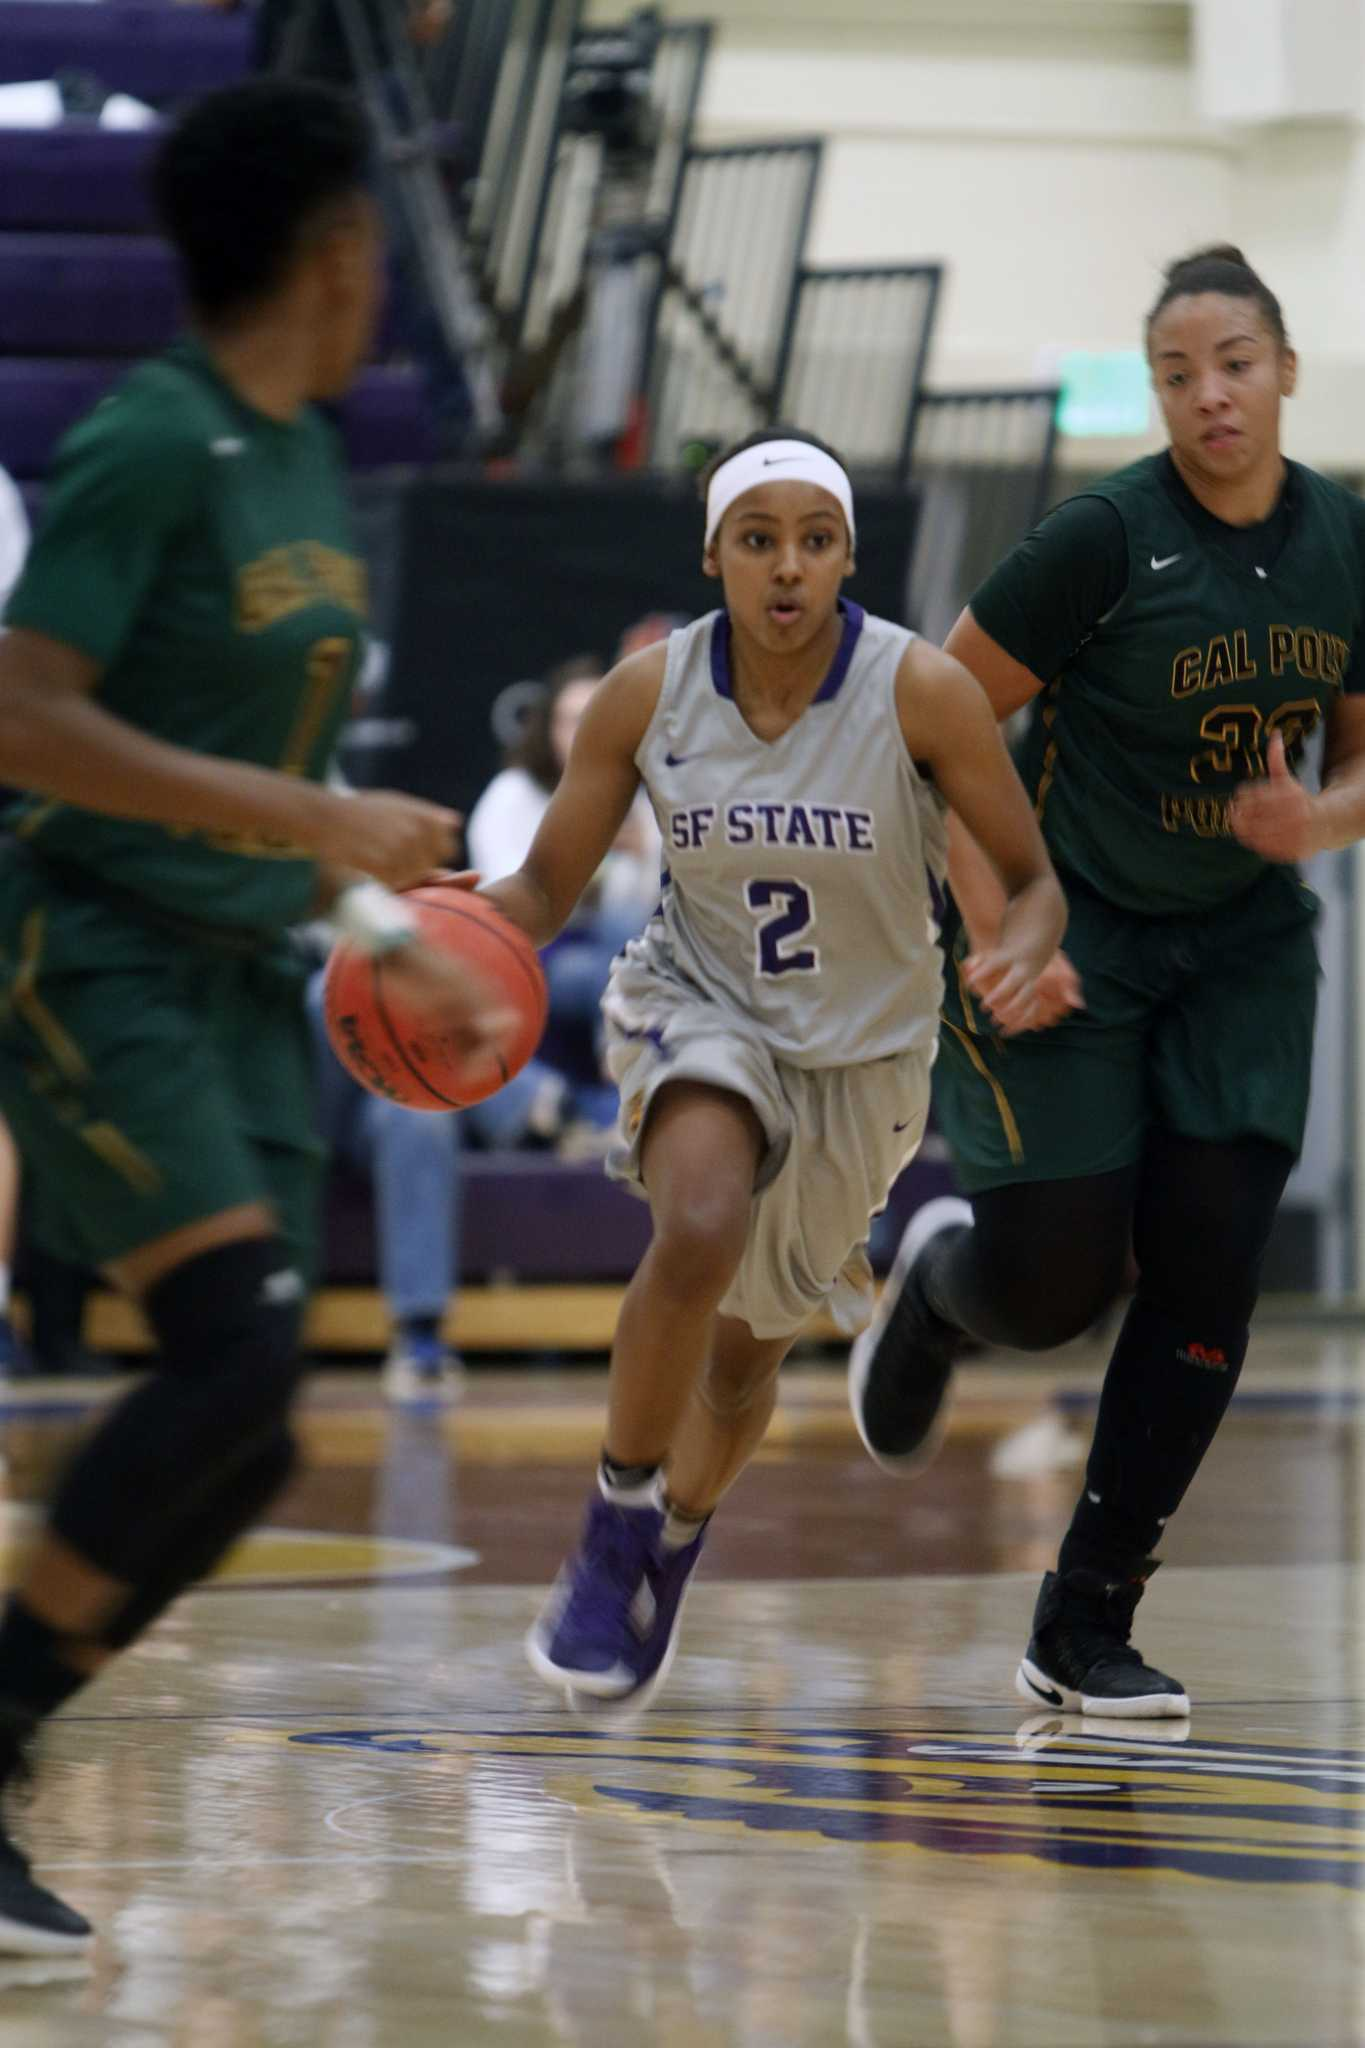 SF State Gators' junior guard Toni Edwards (2) drives the ball down the court during the Gators 59-43 loss to the Cal Poly Pomona Broncos at The Swamp on Dec. 2, 2016.